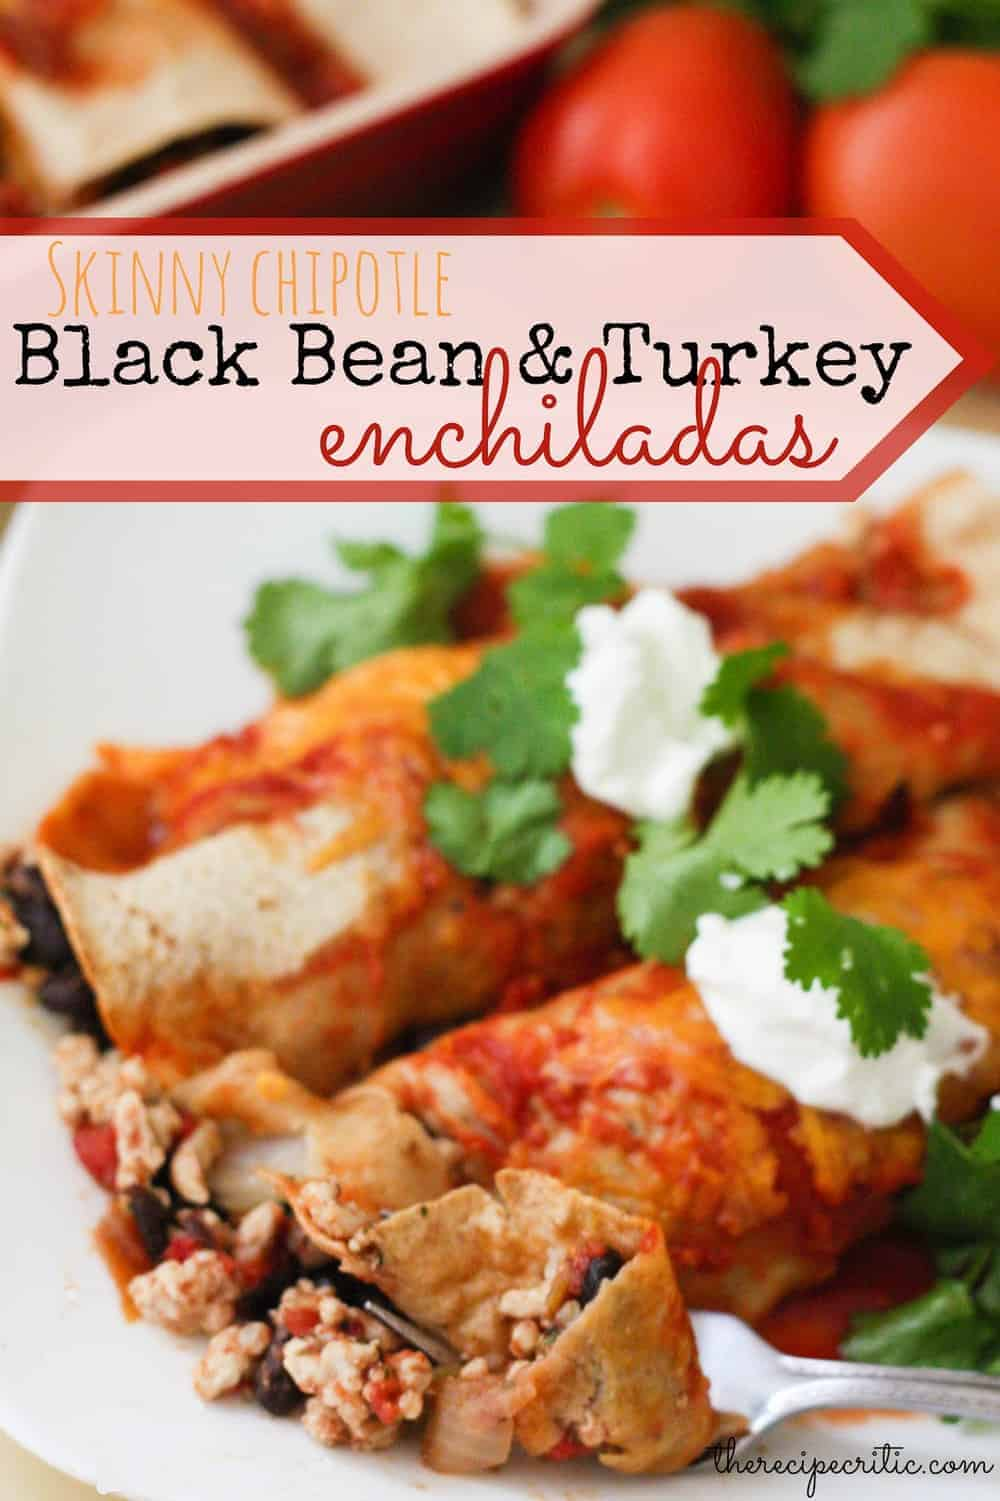 Skinny Chipotle Black Bean & Turkey Enchiladas | The Recipe Critic